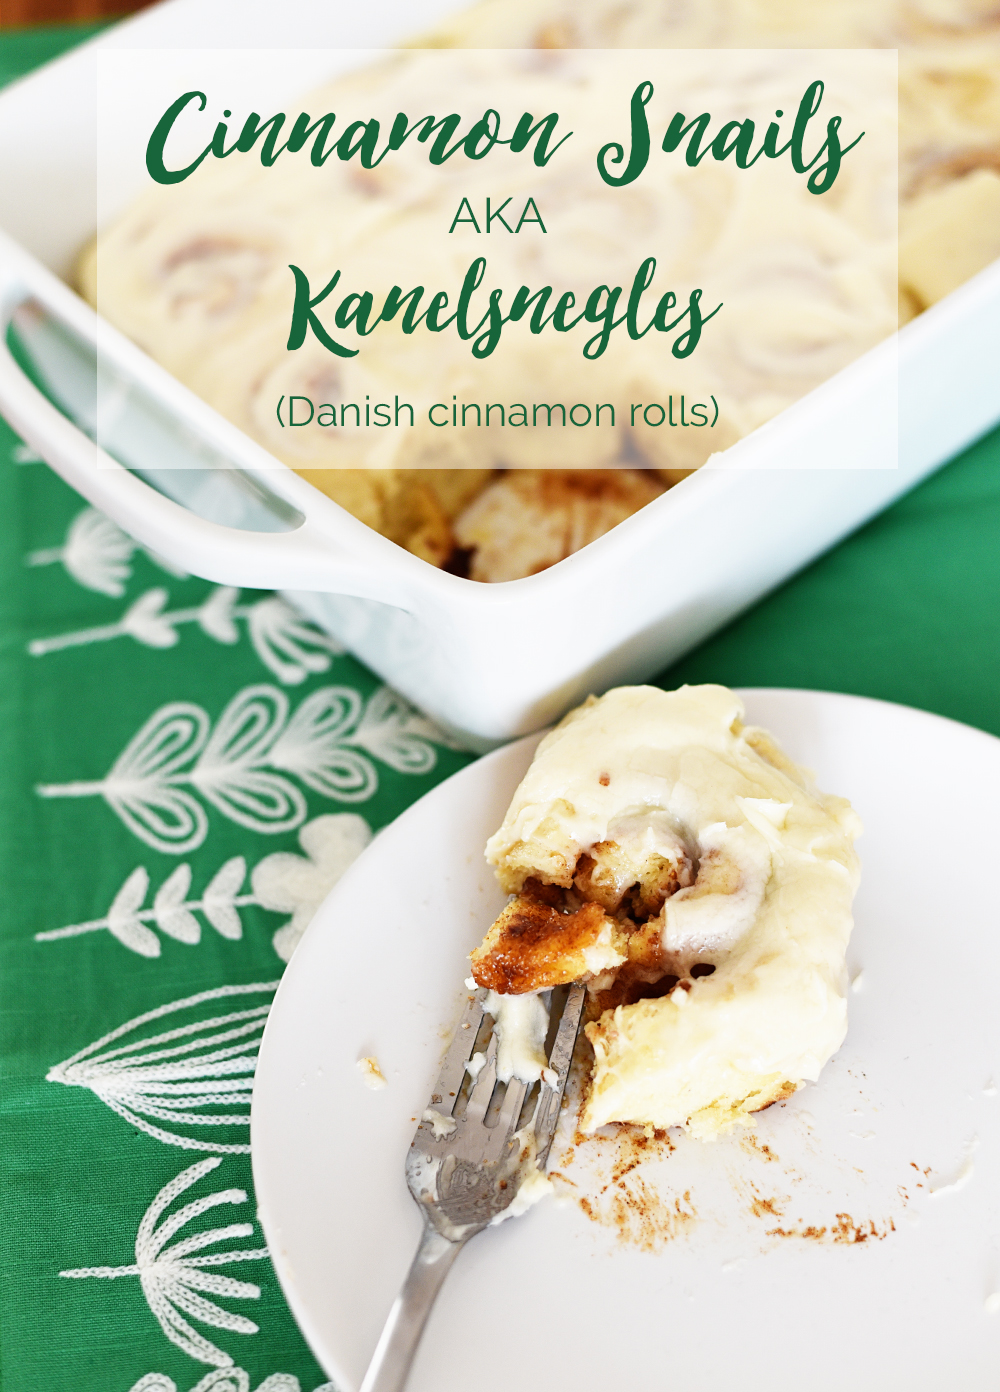 Kanelsnegles or Cinnamon Snails (Danish cinnamon rolls)